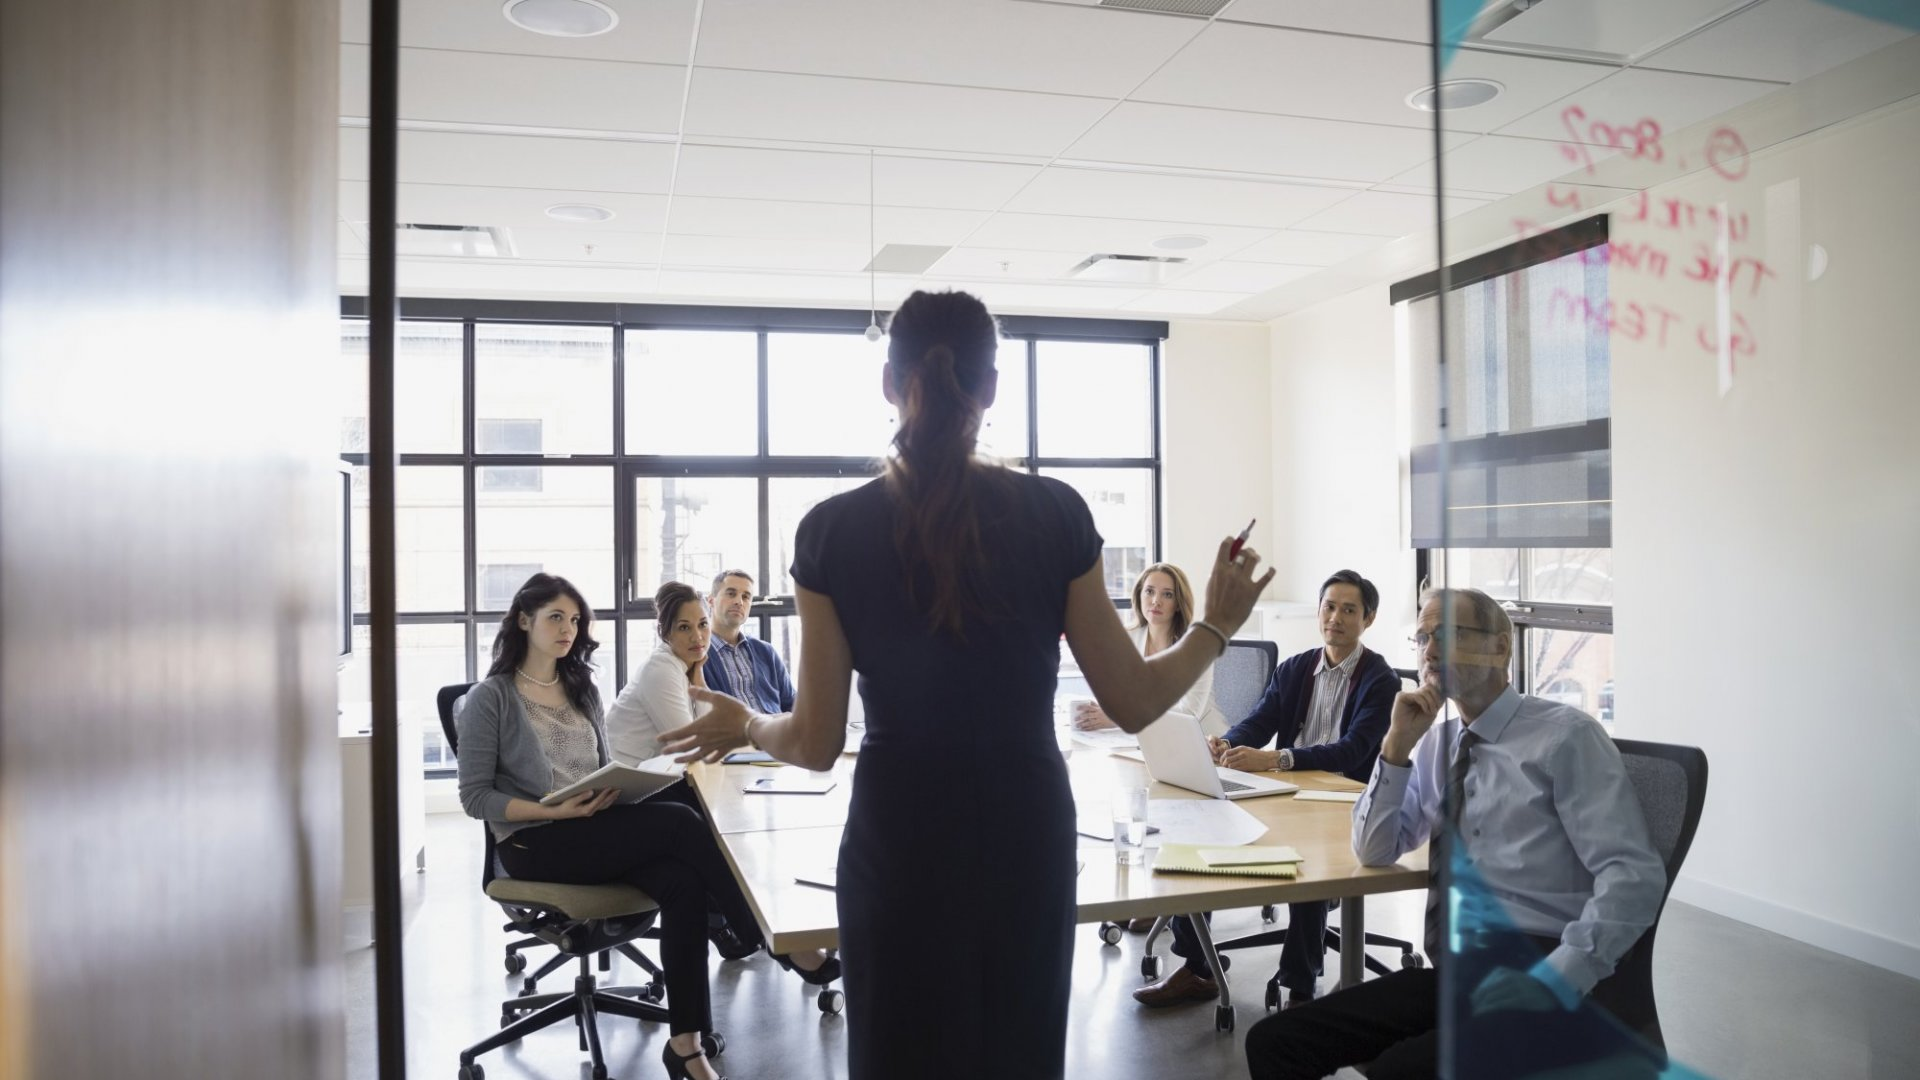 Women Are Seen as Lacking Market Knowledge, Study Finds. Here's How Everyone Can Counter the Misperceptions